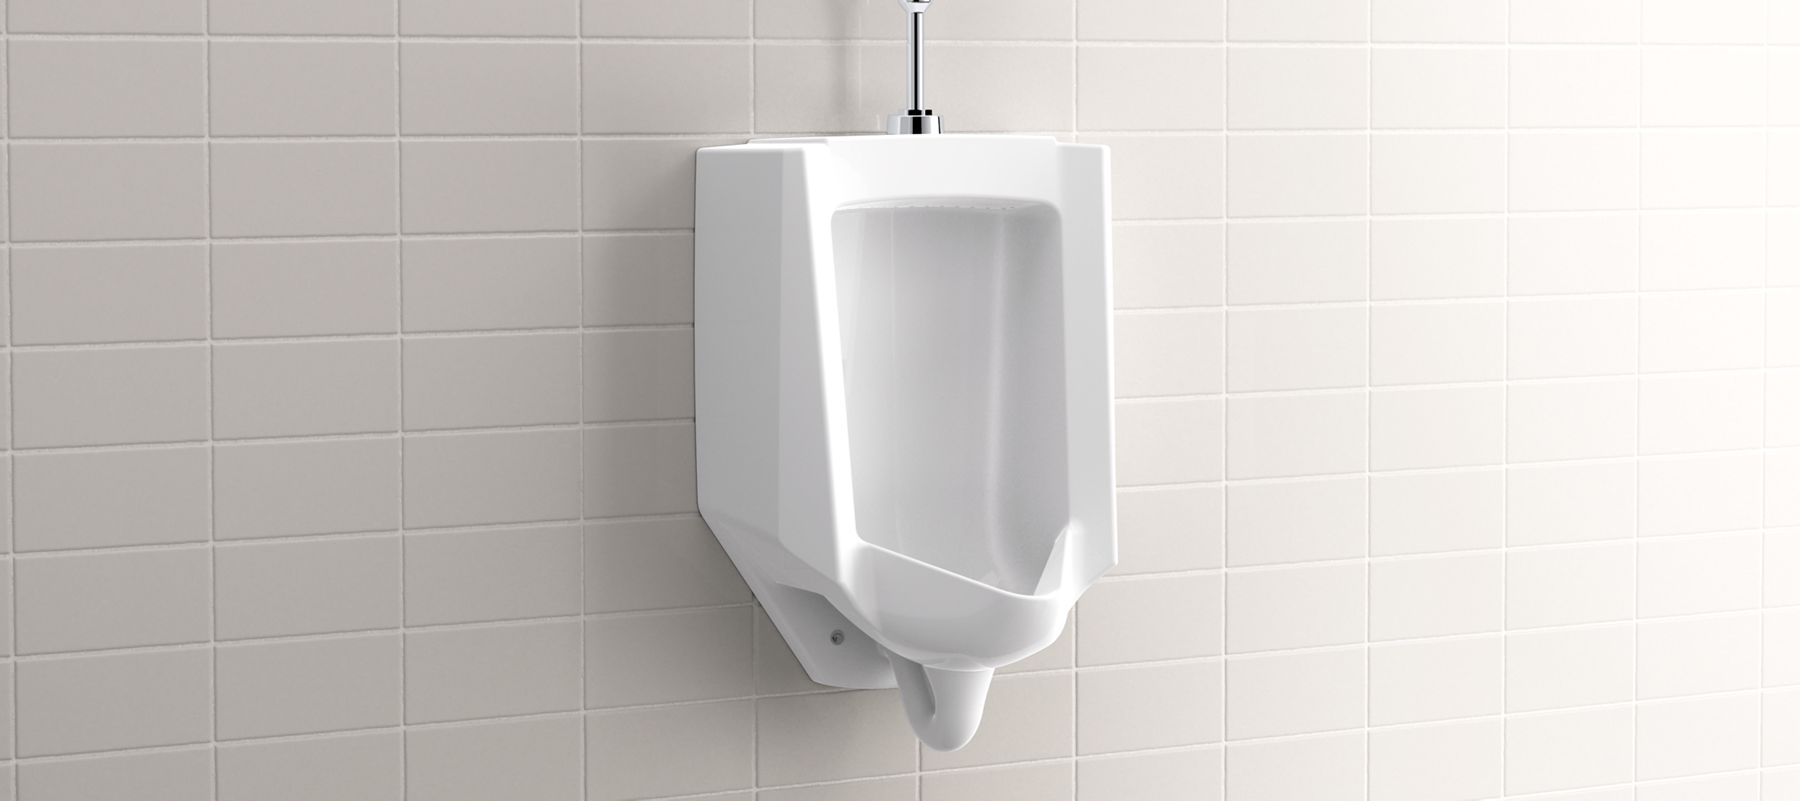 Standard Urinals Urinals Commercial Bathroom Bathroom KOHLER - Commercial grade bathroom fixtures